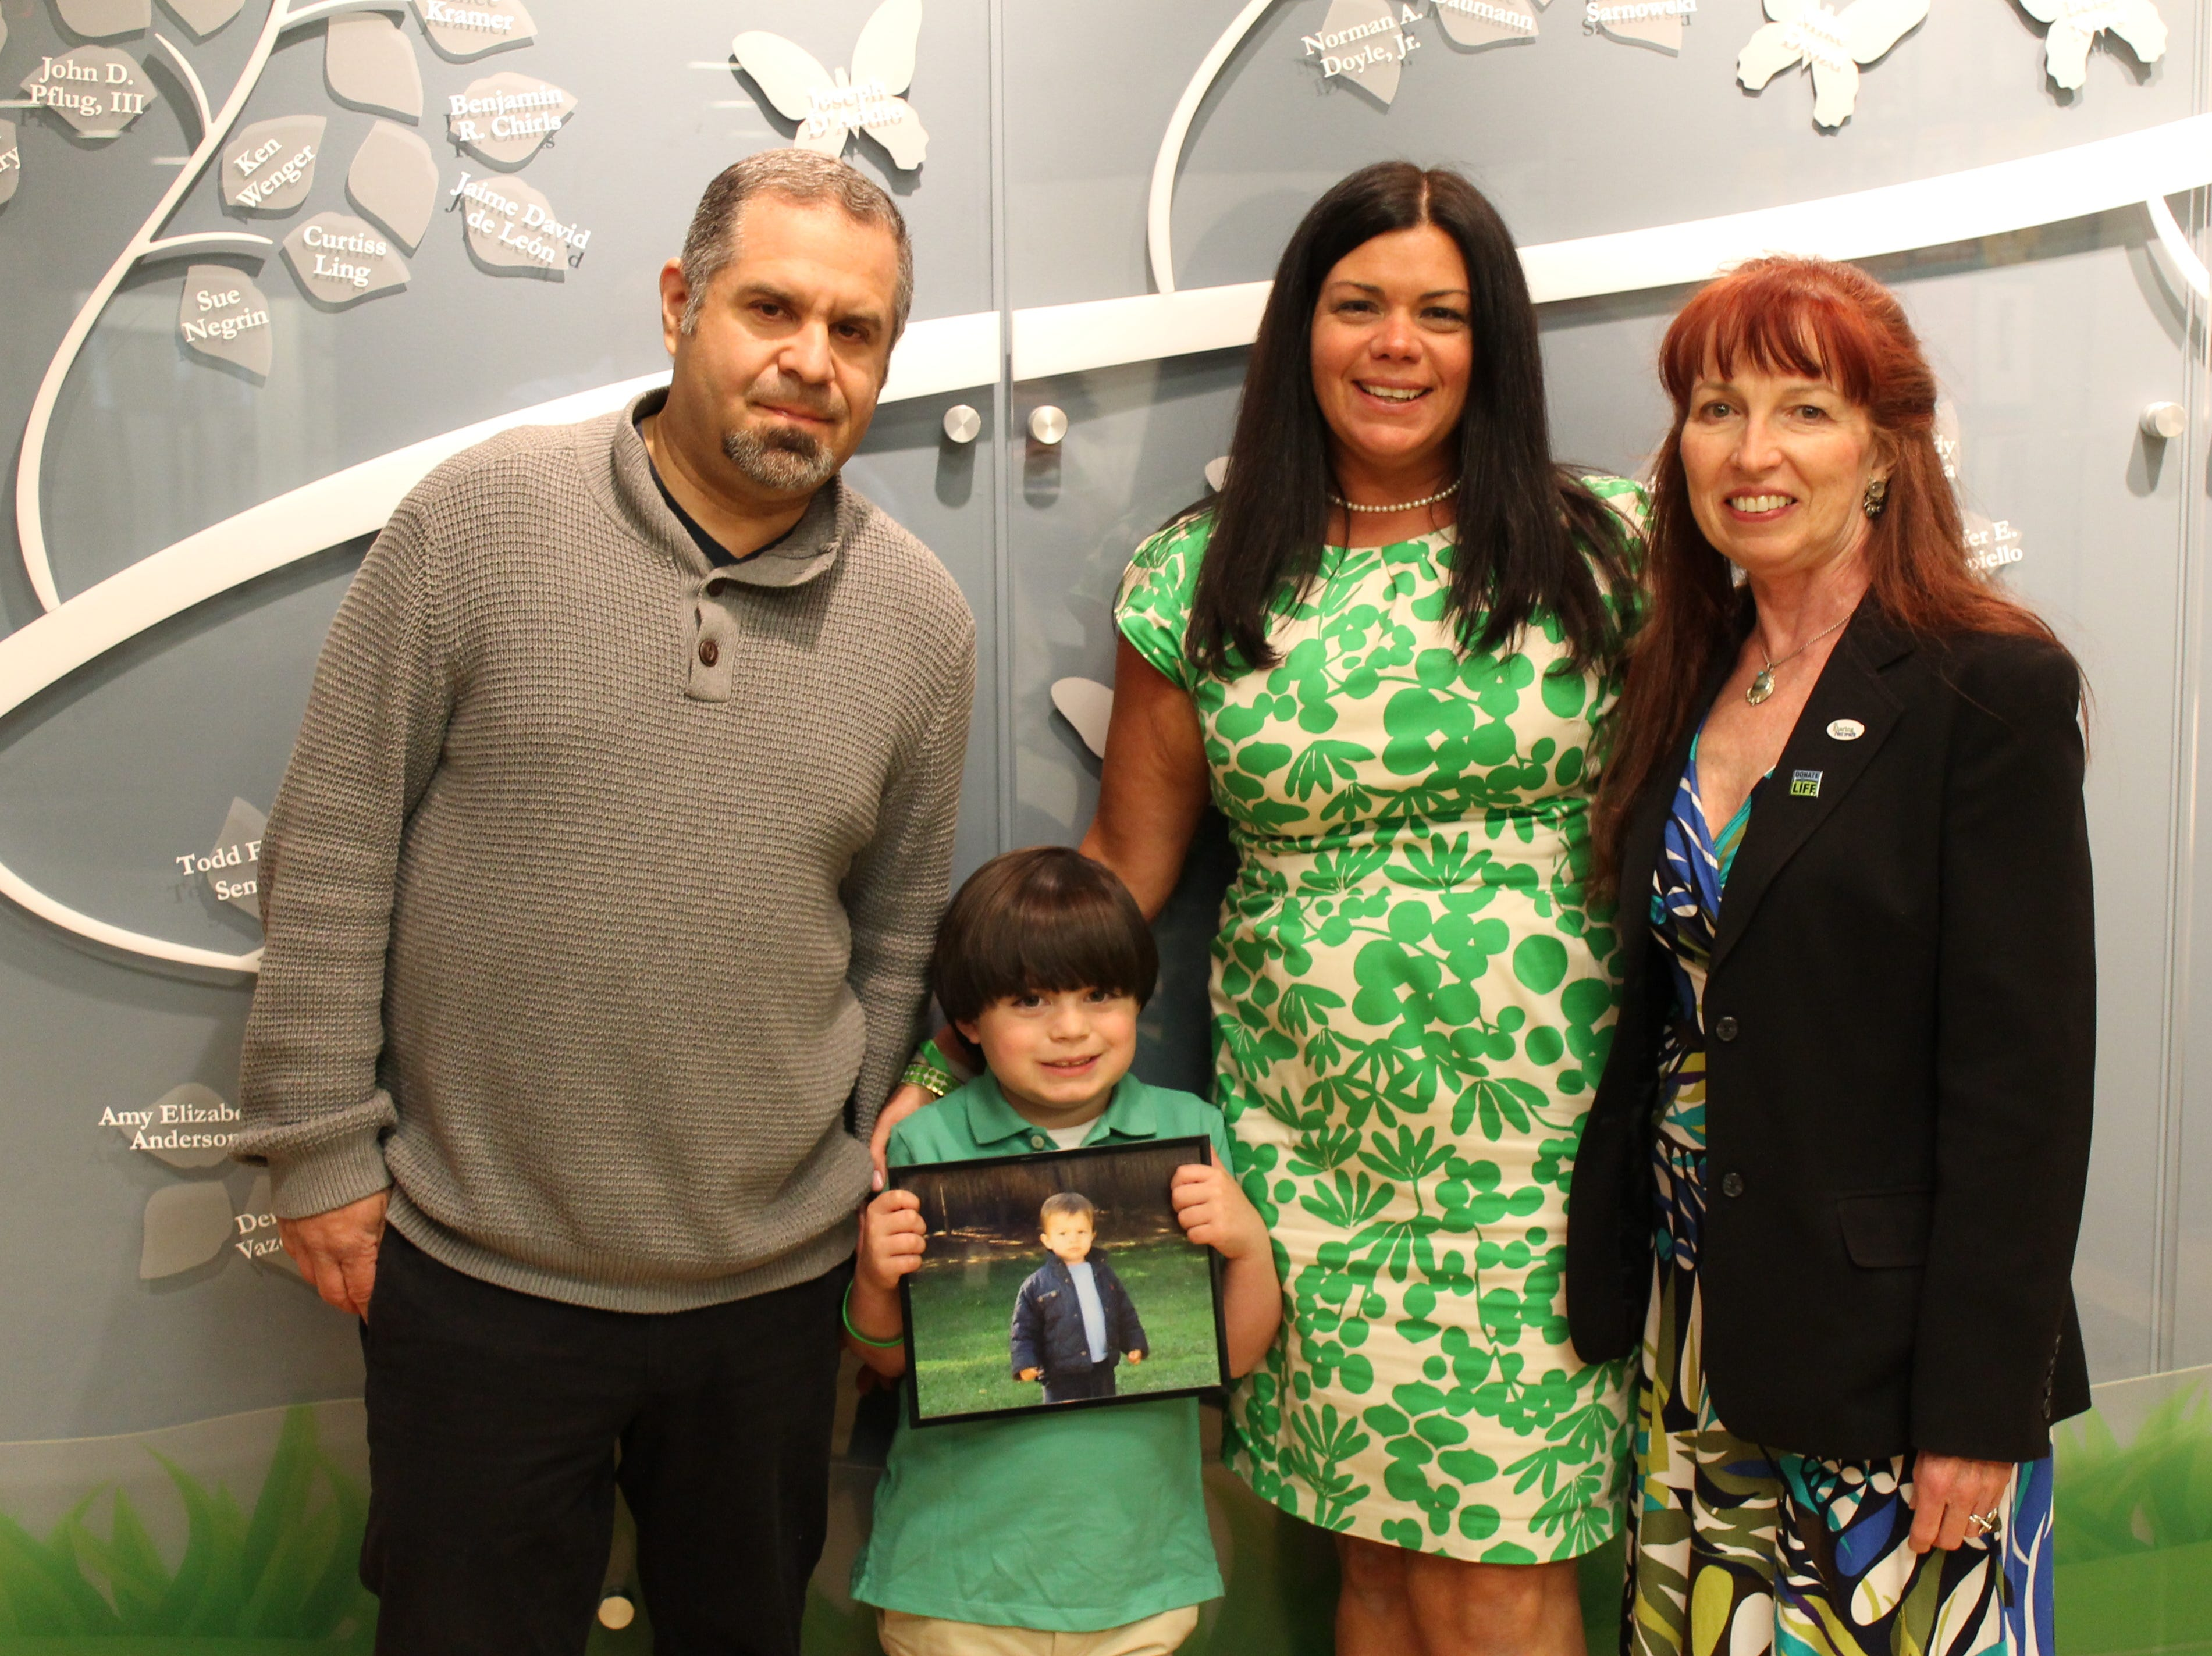 Dorothea Duffy (right) with the Ben Diamond's family: Dad Michael, mom Susan, brother Jake.